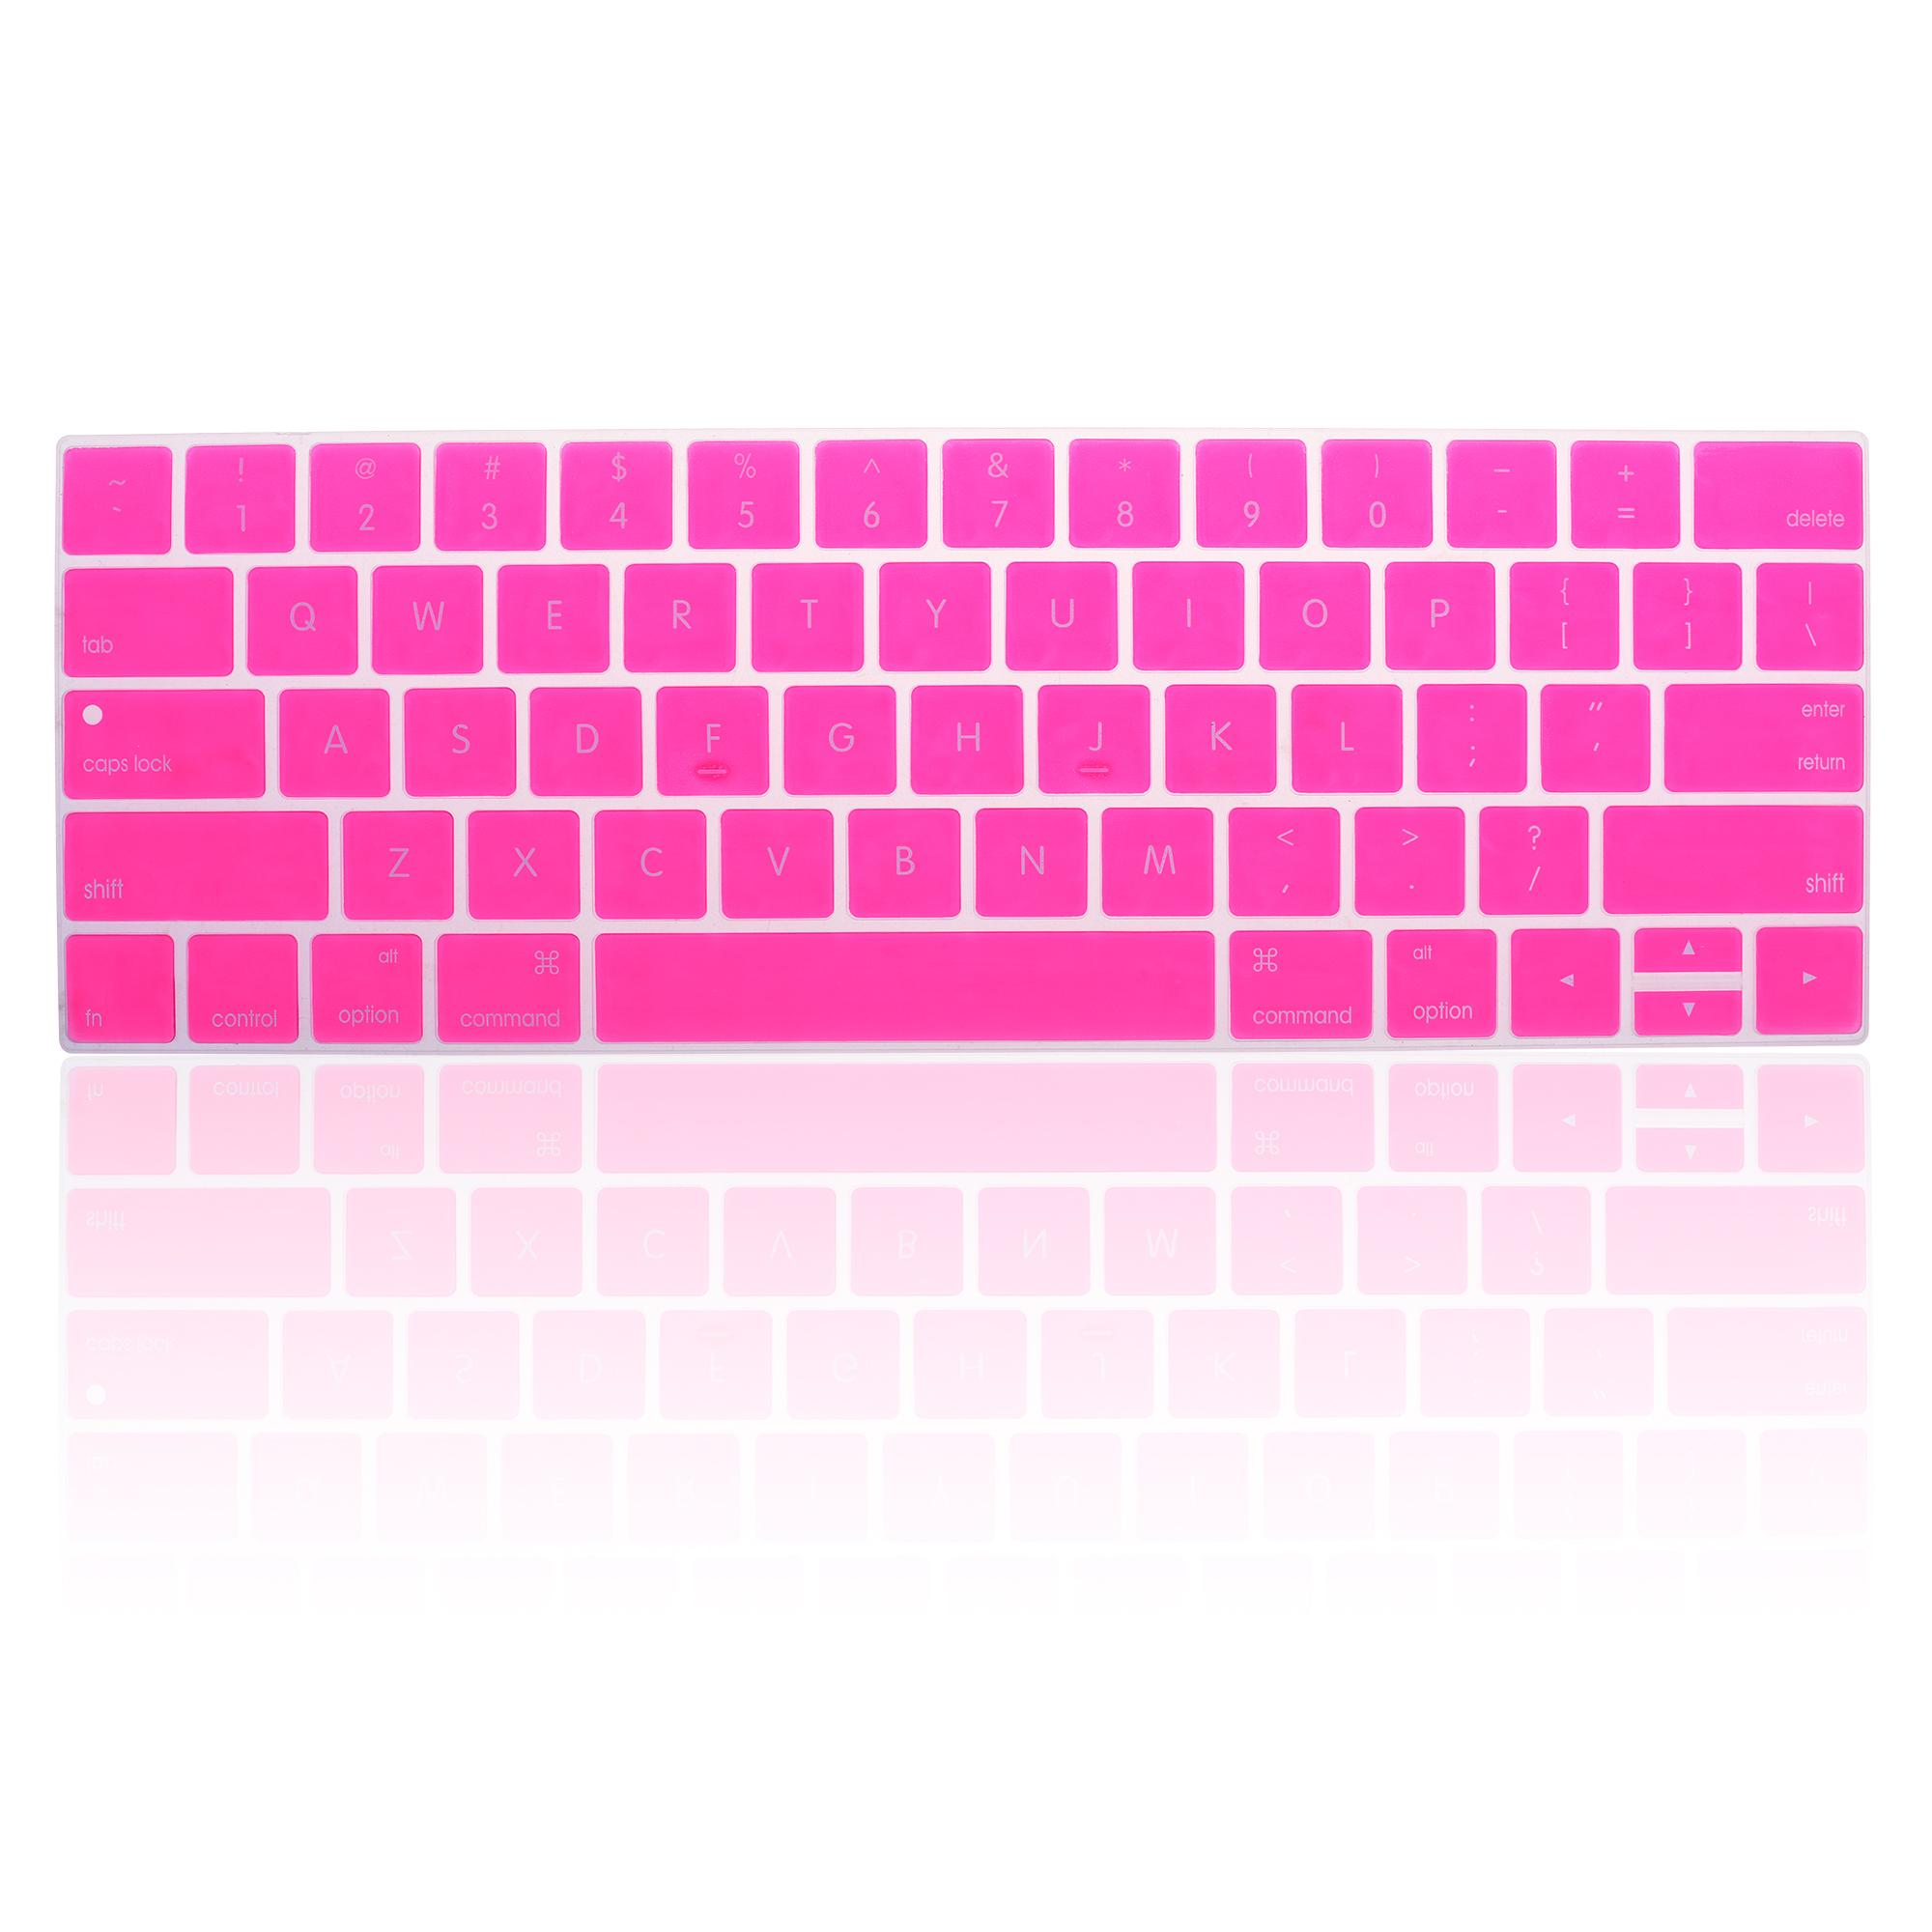 Lightning Power - Keyboard Protector Cover Silicone Skin for Latest (Model A1706/A1707/